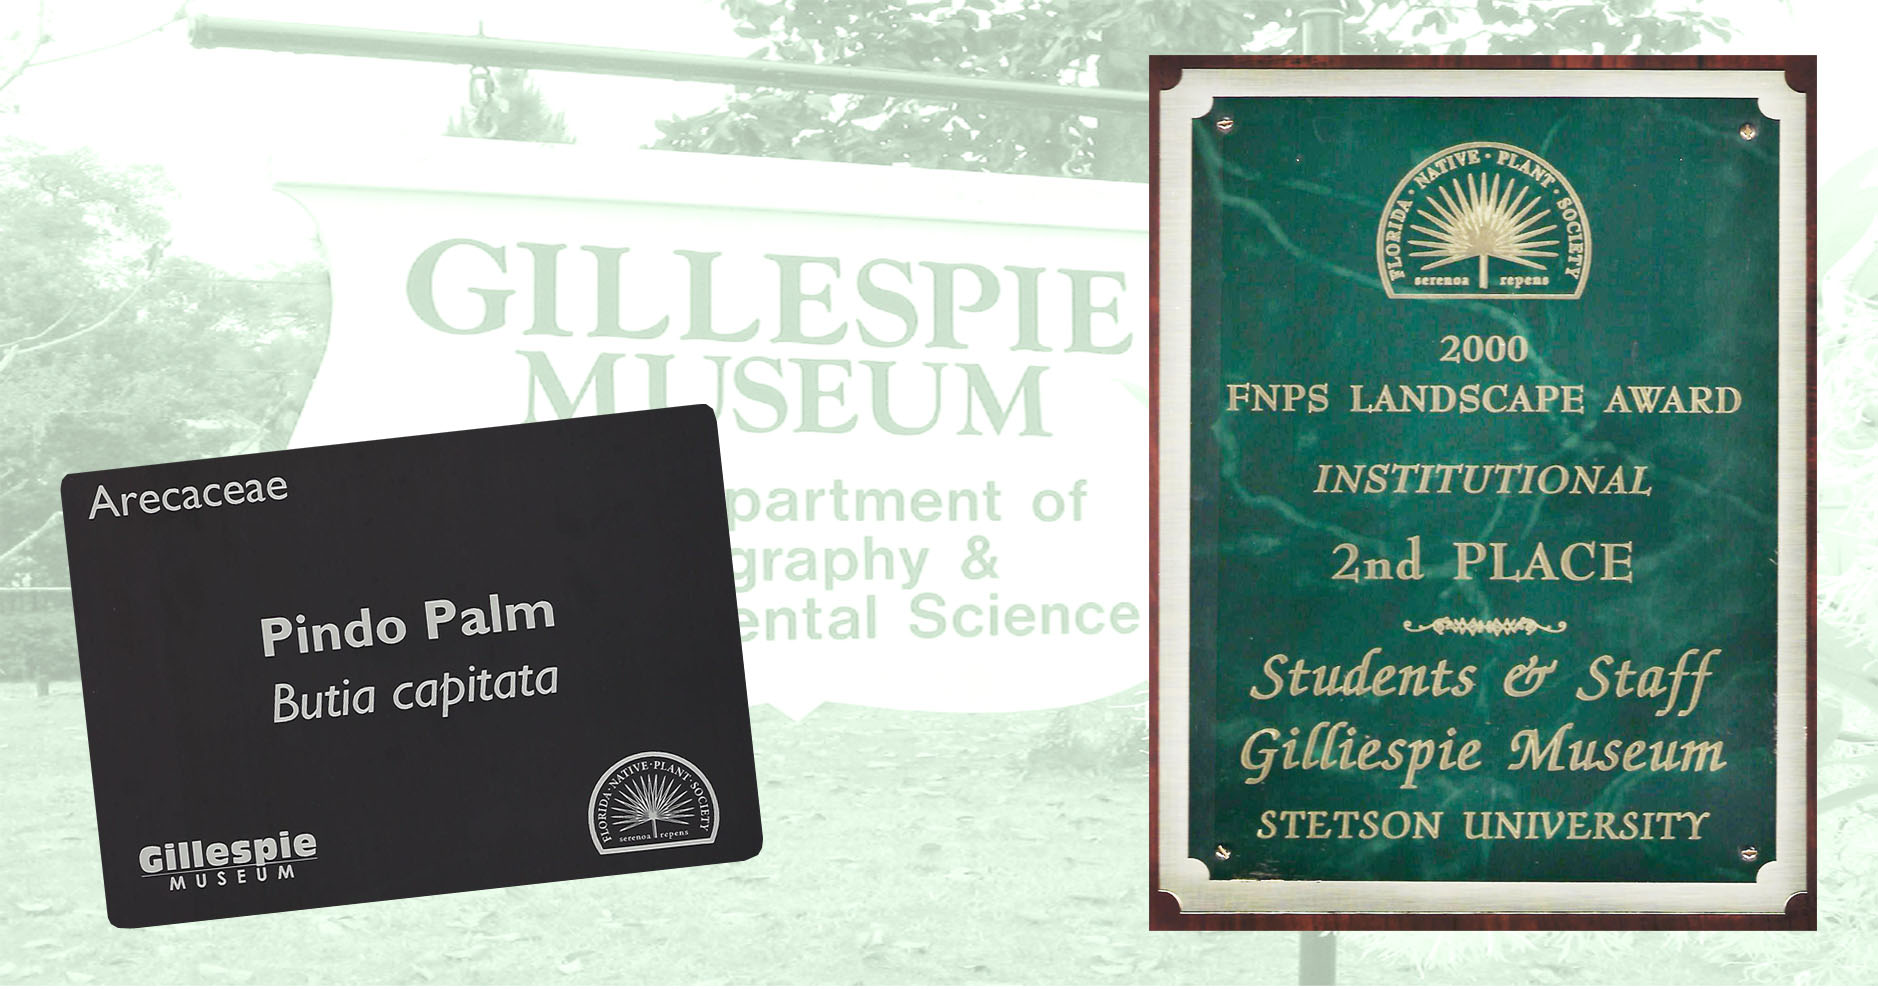 Florida Native Landscape award and plant sign